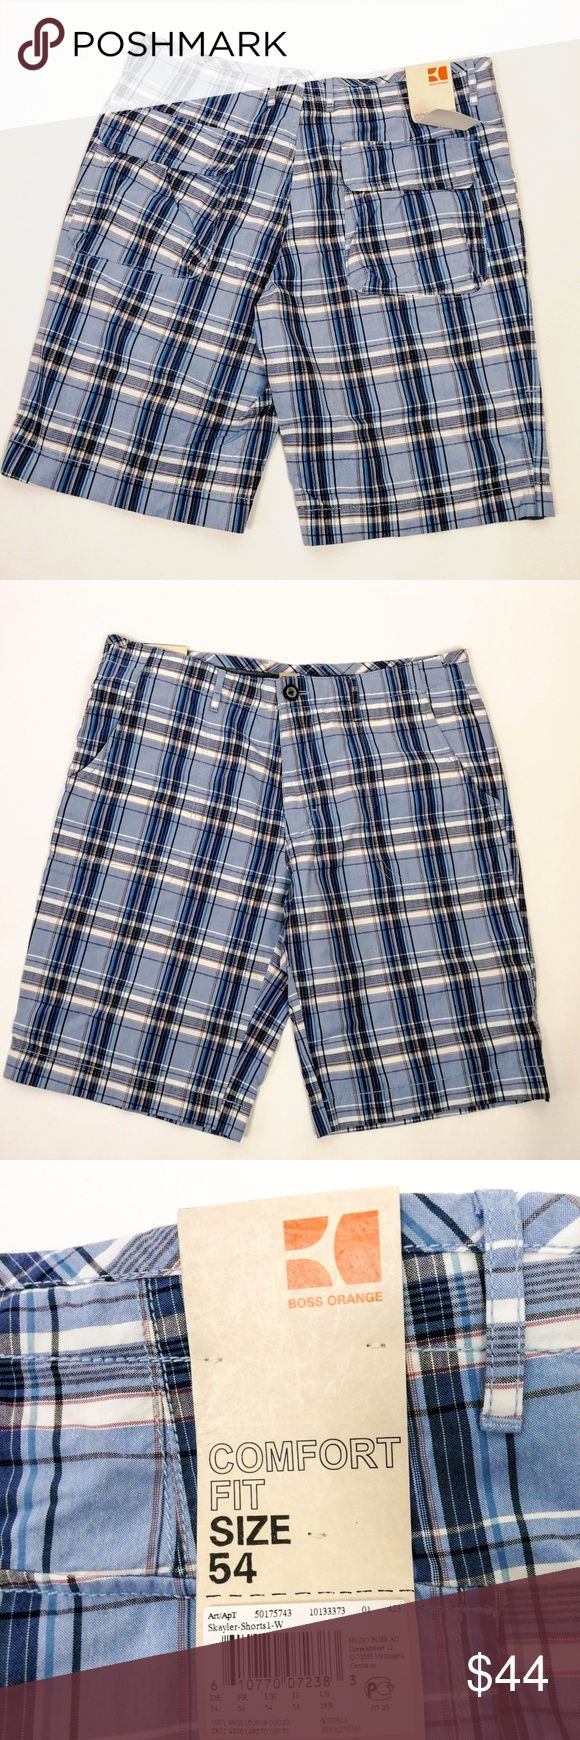 """Hugo Boss Orange Label Mens Shorts Blue Plaid 38 R Boss Orange Mens Shorts NWT  Size  38 R  USA  Blue Plaid Skyler   ( Note sizing on tag  54 EU )  Comfort Fit  Waist - 19.5  ( layed flat) - multilply by 2 for approx. circumference)  Side Length - 23 """" ( center back neck seam to hem)  Button, zip and drawstring waist  New with Tag ( tag loose) Hugo Boss Shorts"""